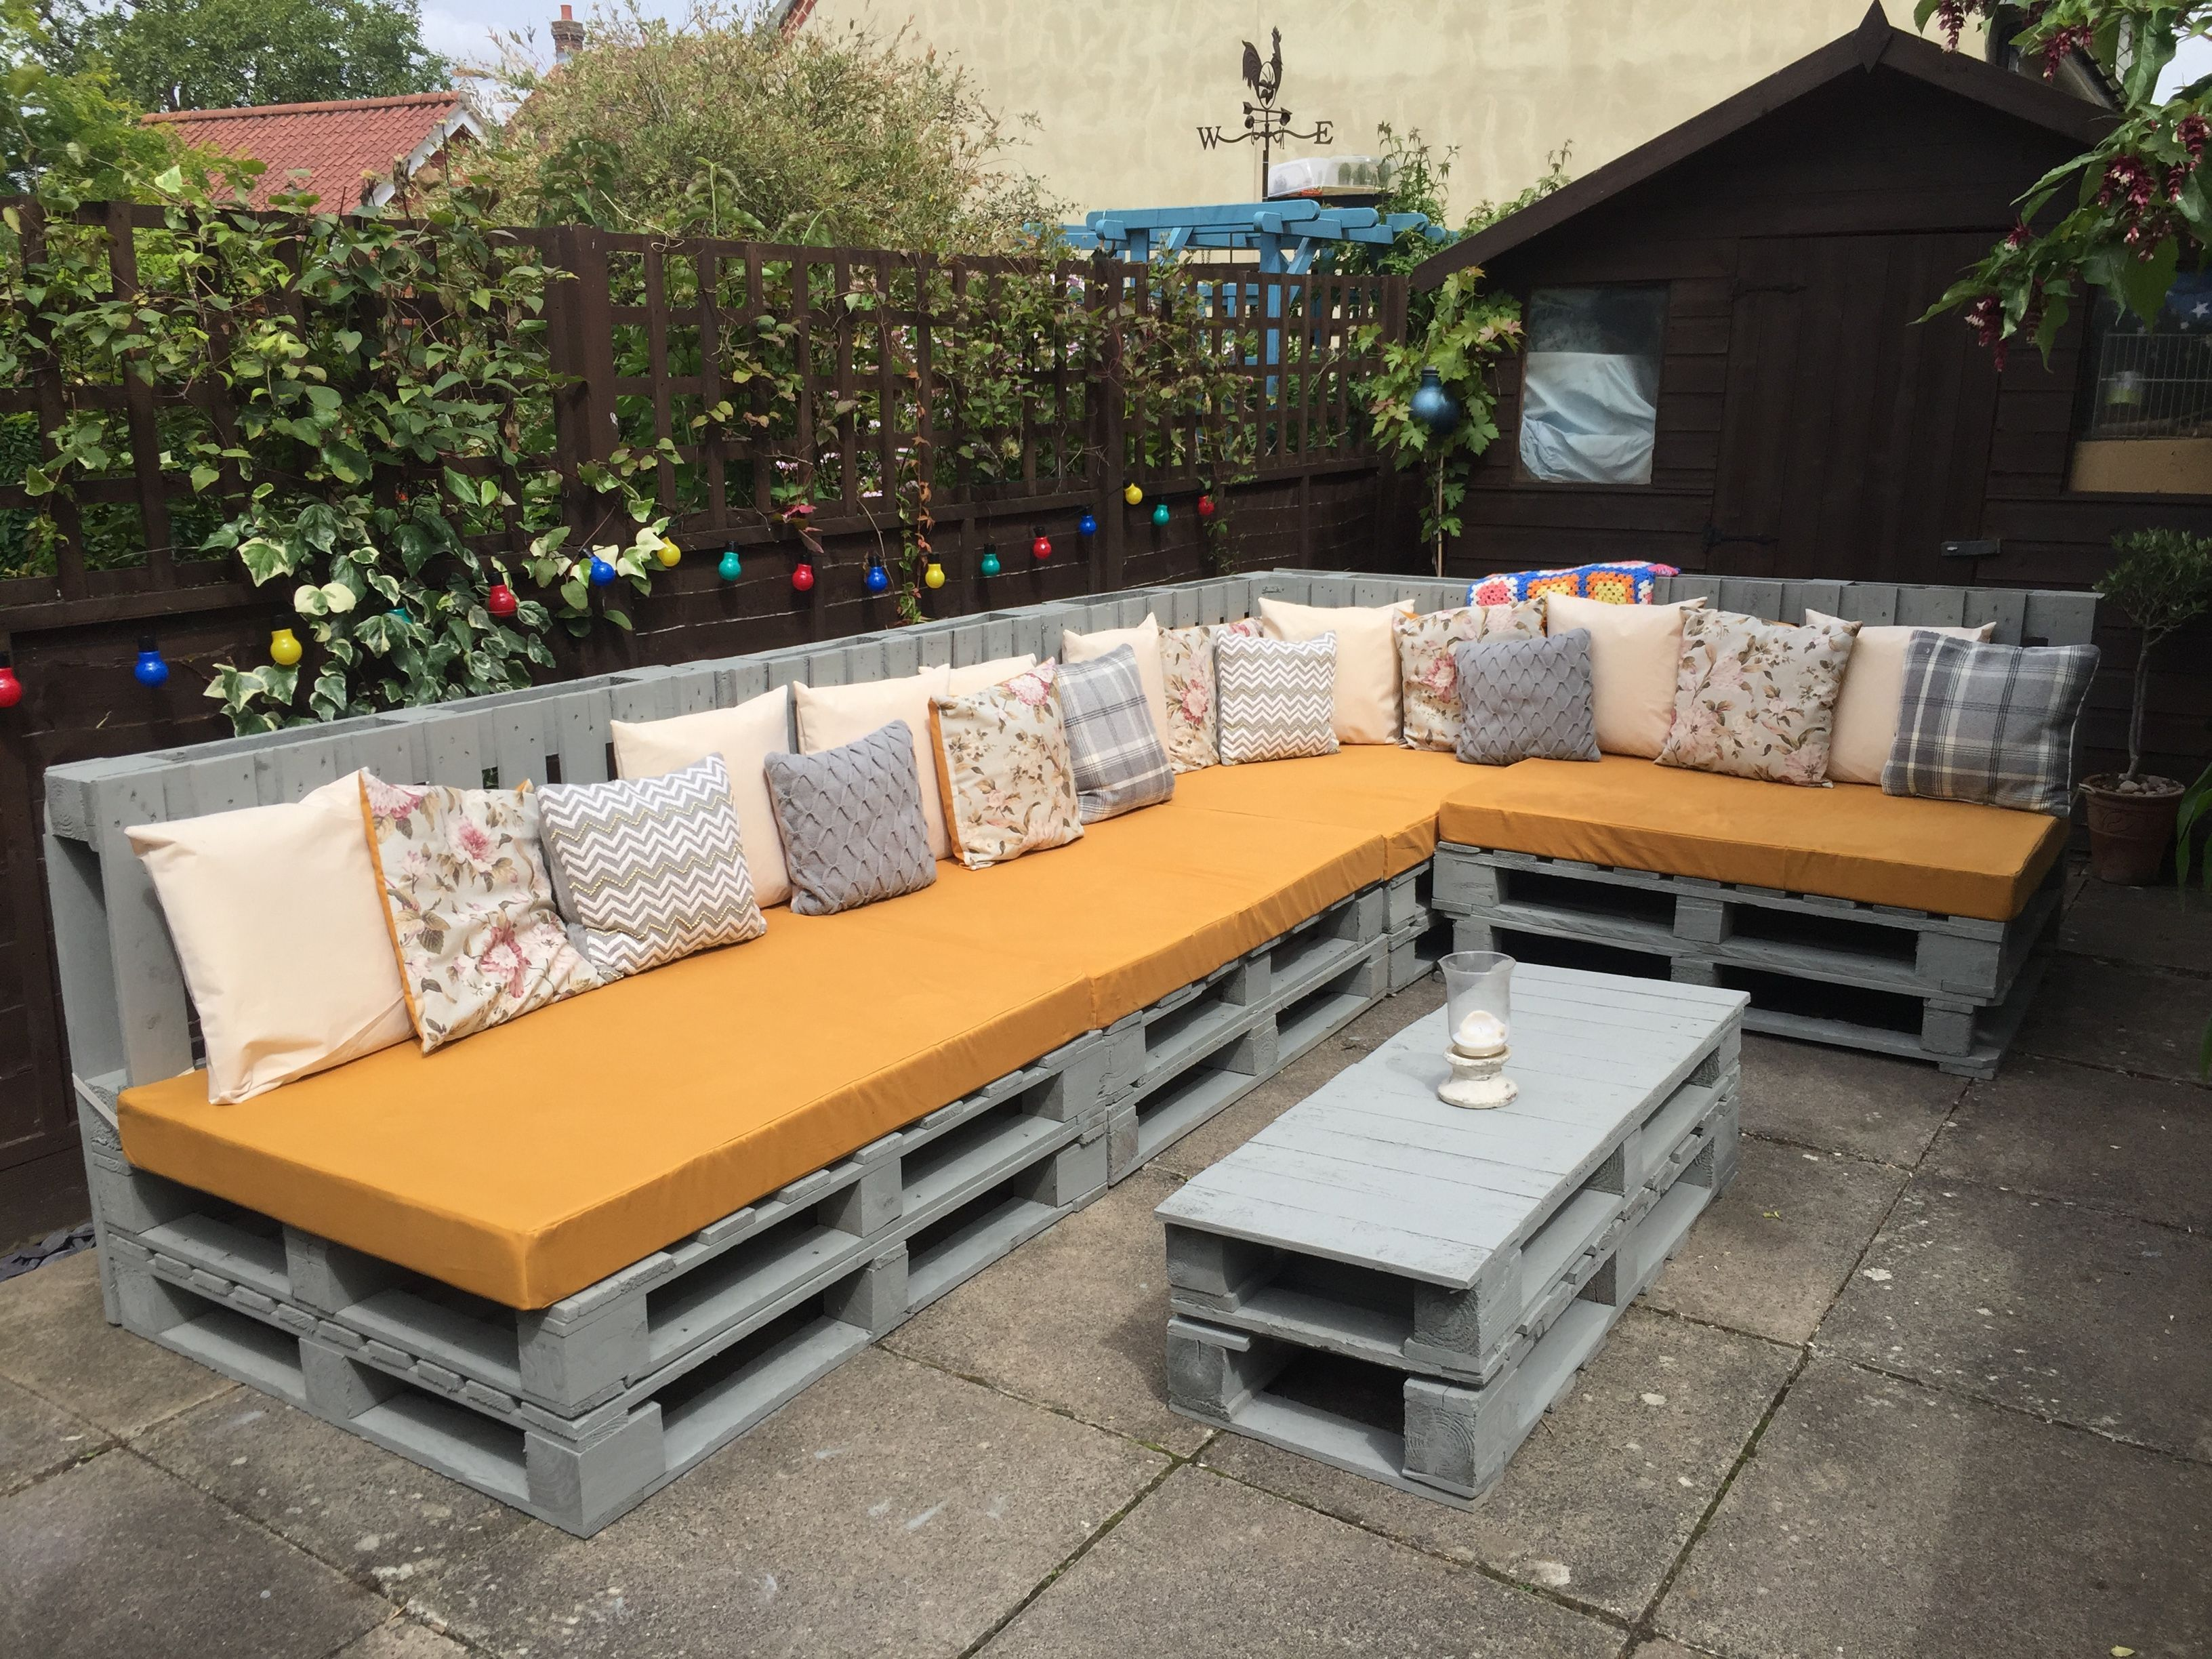 Pin on Garden Furniture Ideas